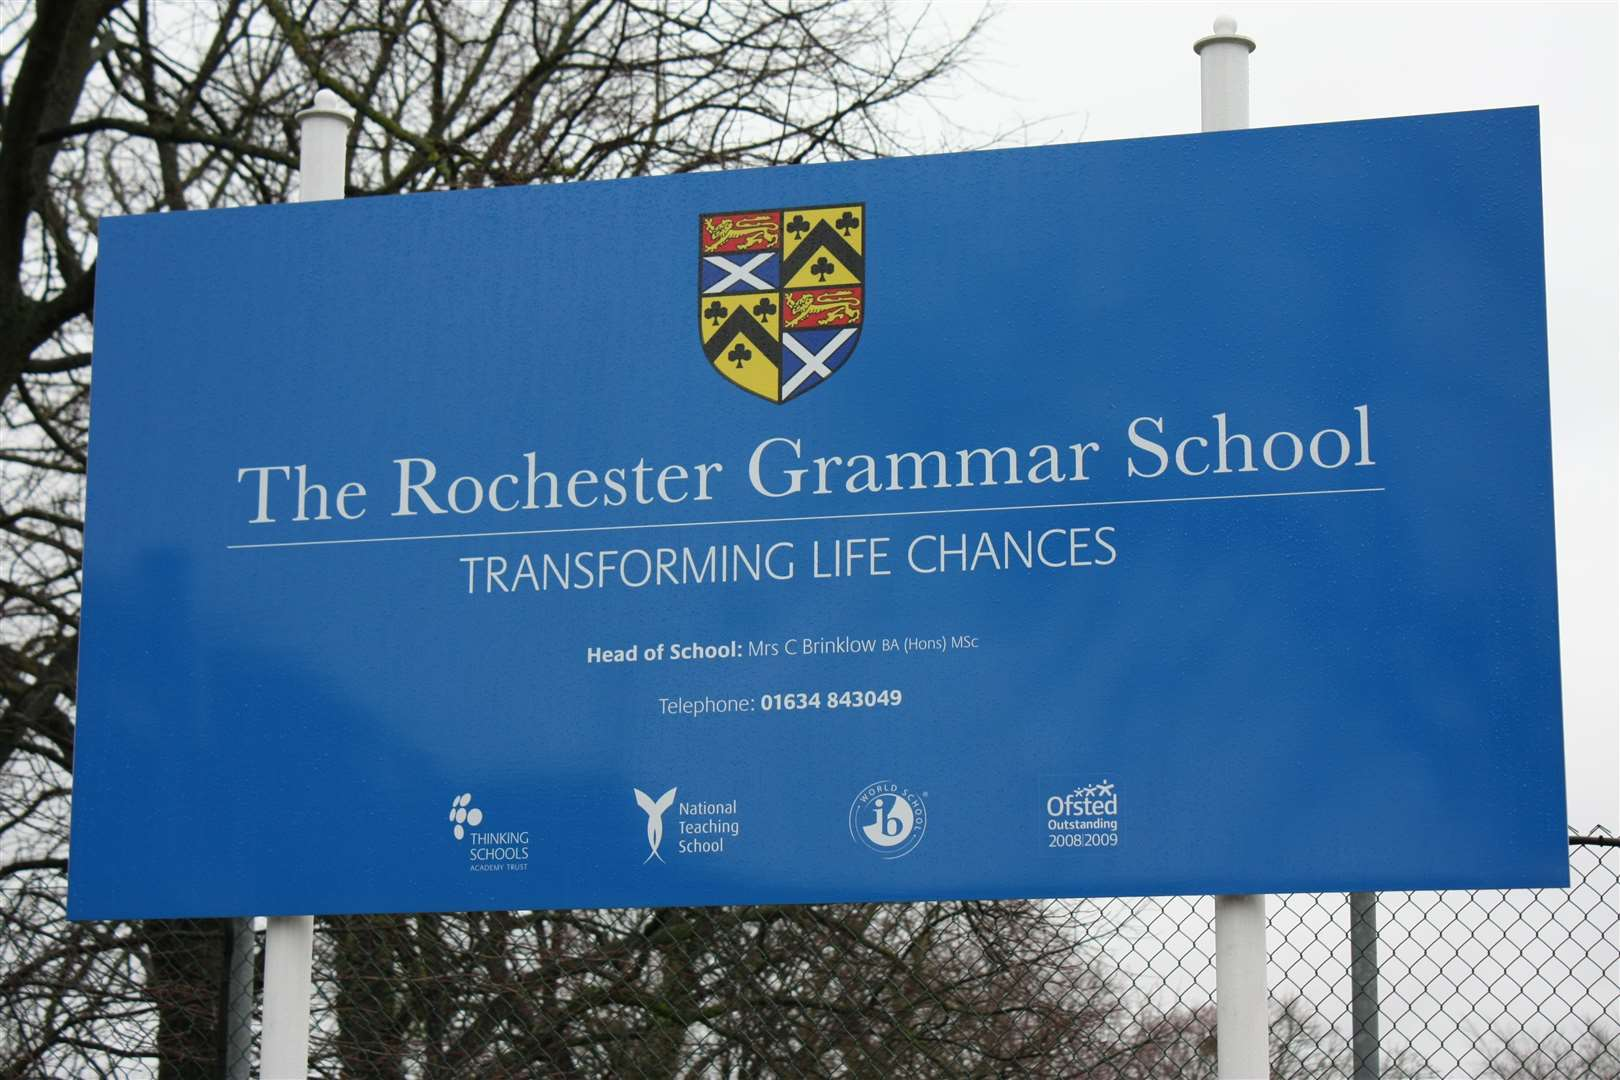 Rochester Grammar School has defended its decision